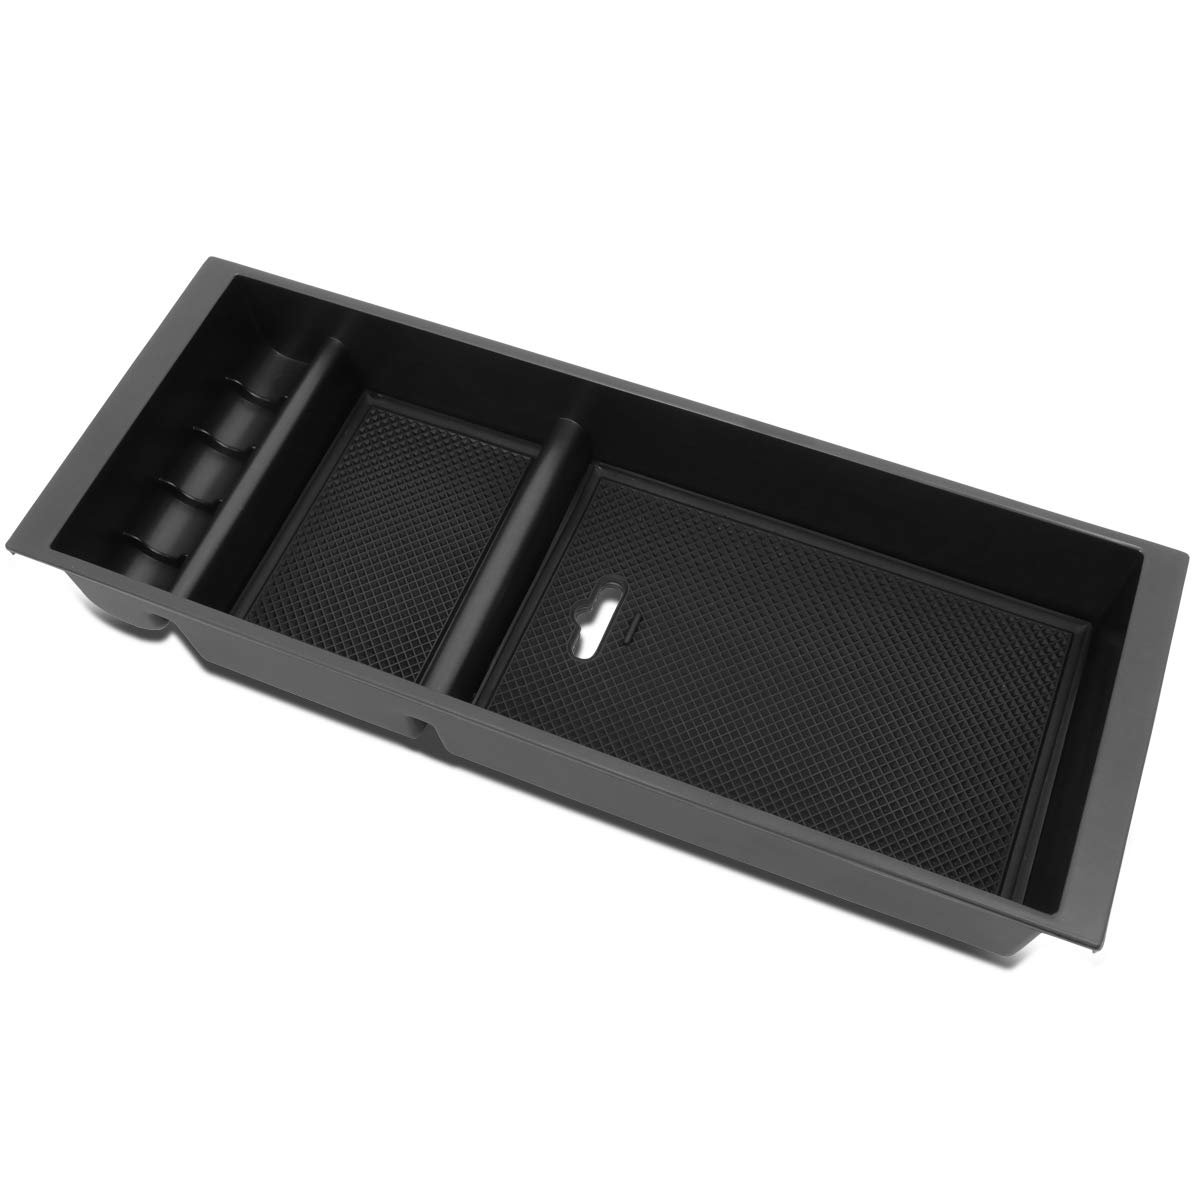 DNA Motoring ZTL-Y-0073 Factory Style Center Console Organizer Tray Storage Box Replacement